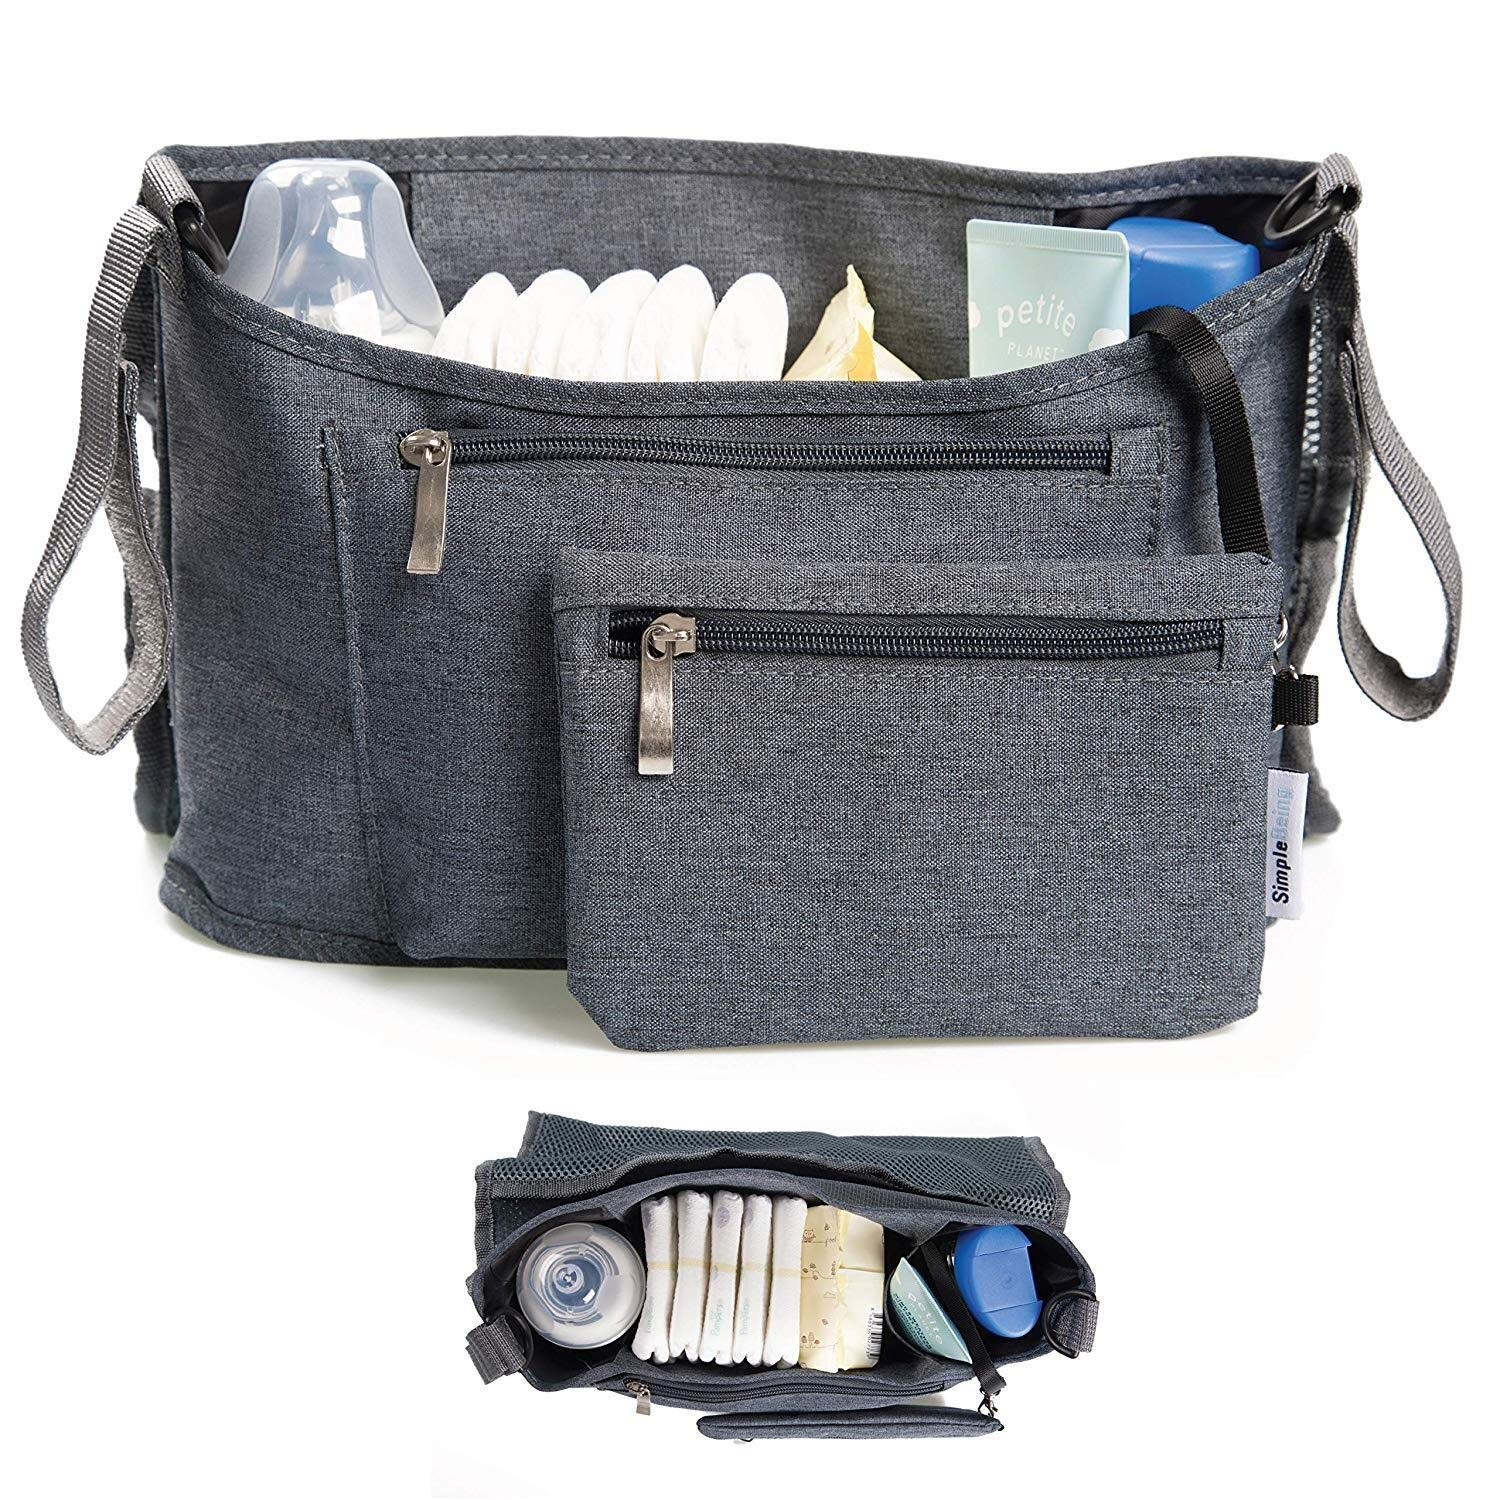 Simple Being Baby Stroller Organizer, Universal Fit Storage Compartments Travel Accessories Bag (Black)